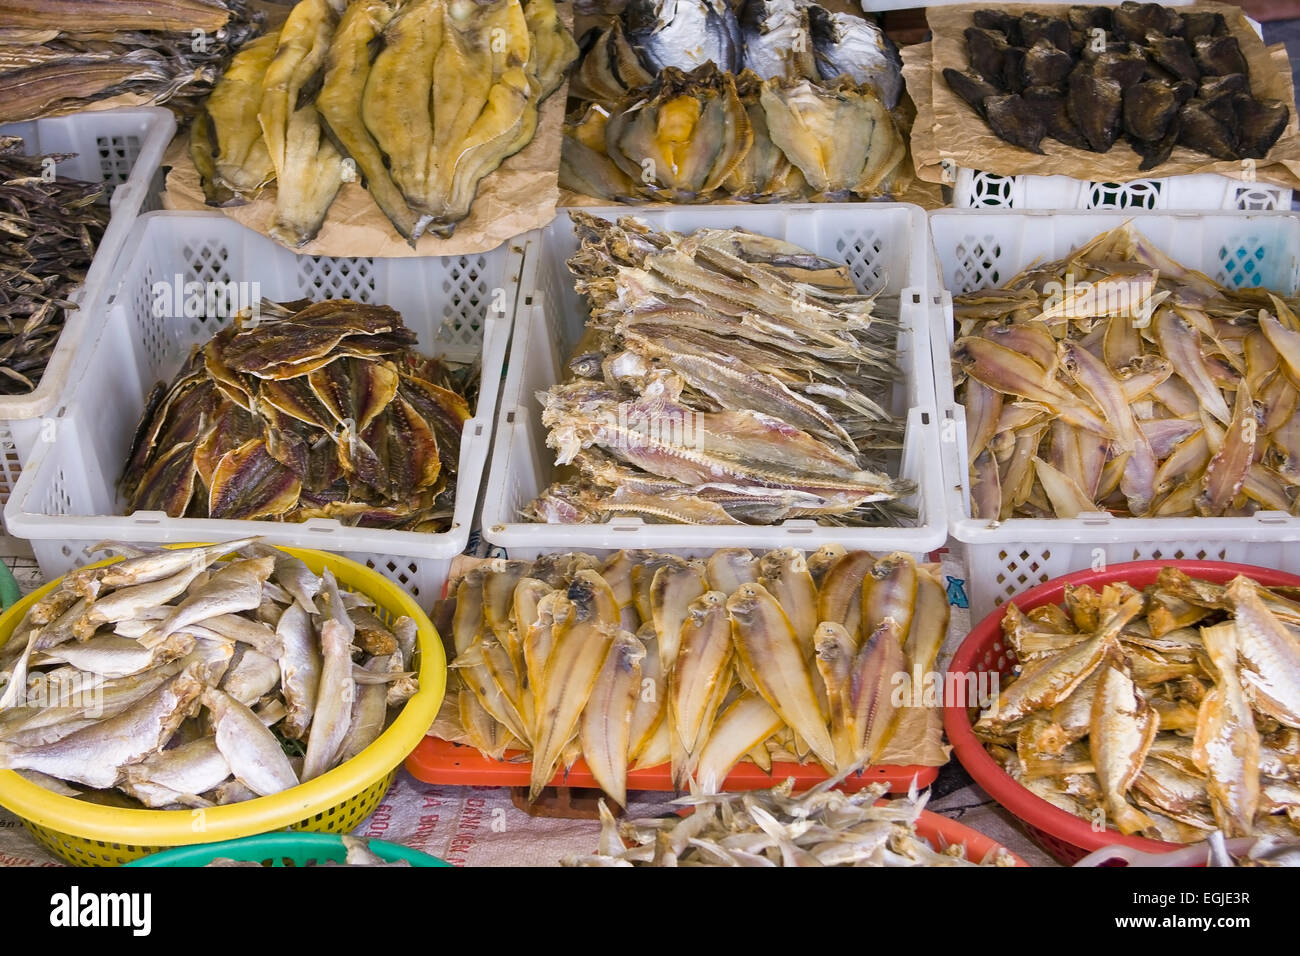 Fish for sale at the market in Cai Be, Mekong Delta, Vietnam, Southeast Asia - Stock Image